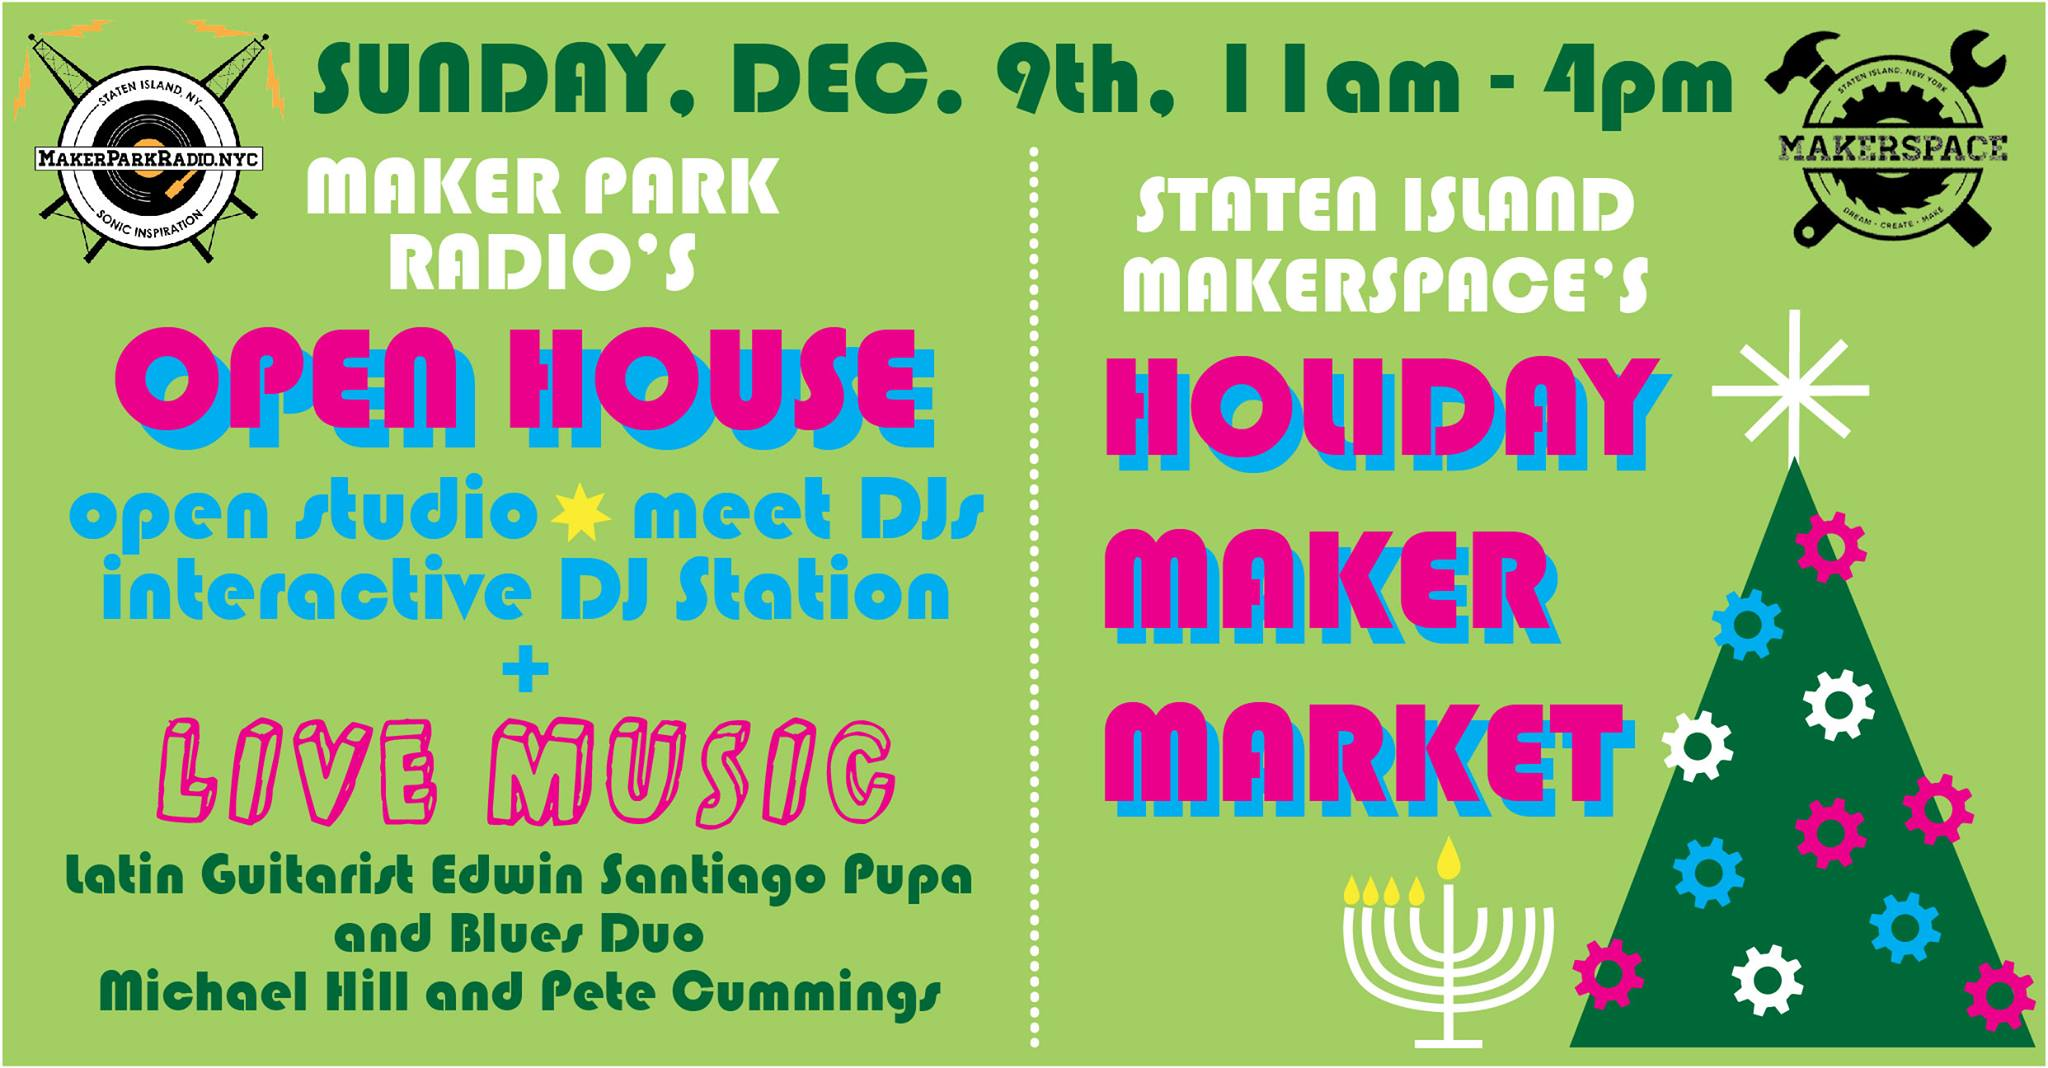 Makerspace Holiday MArket.jpg